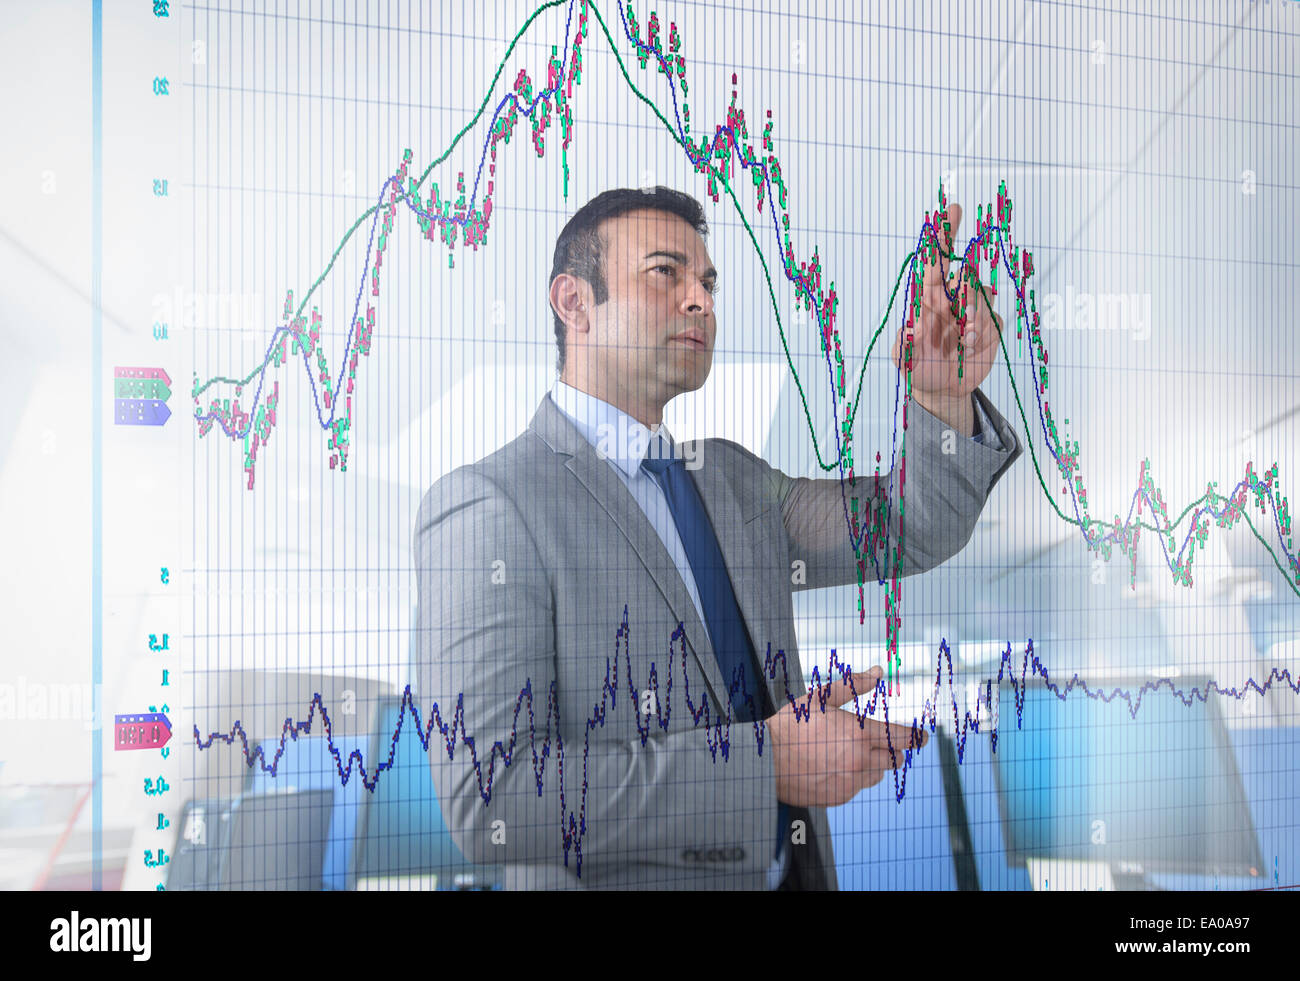 Asian businessman inspecting graph on interactive display - Stock Image